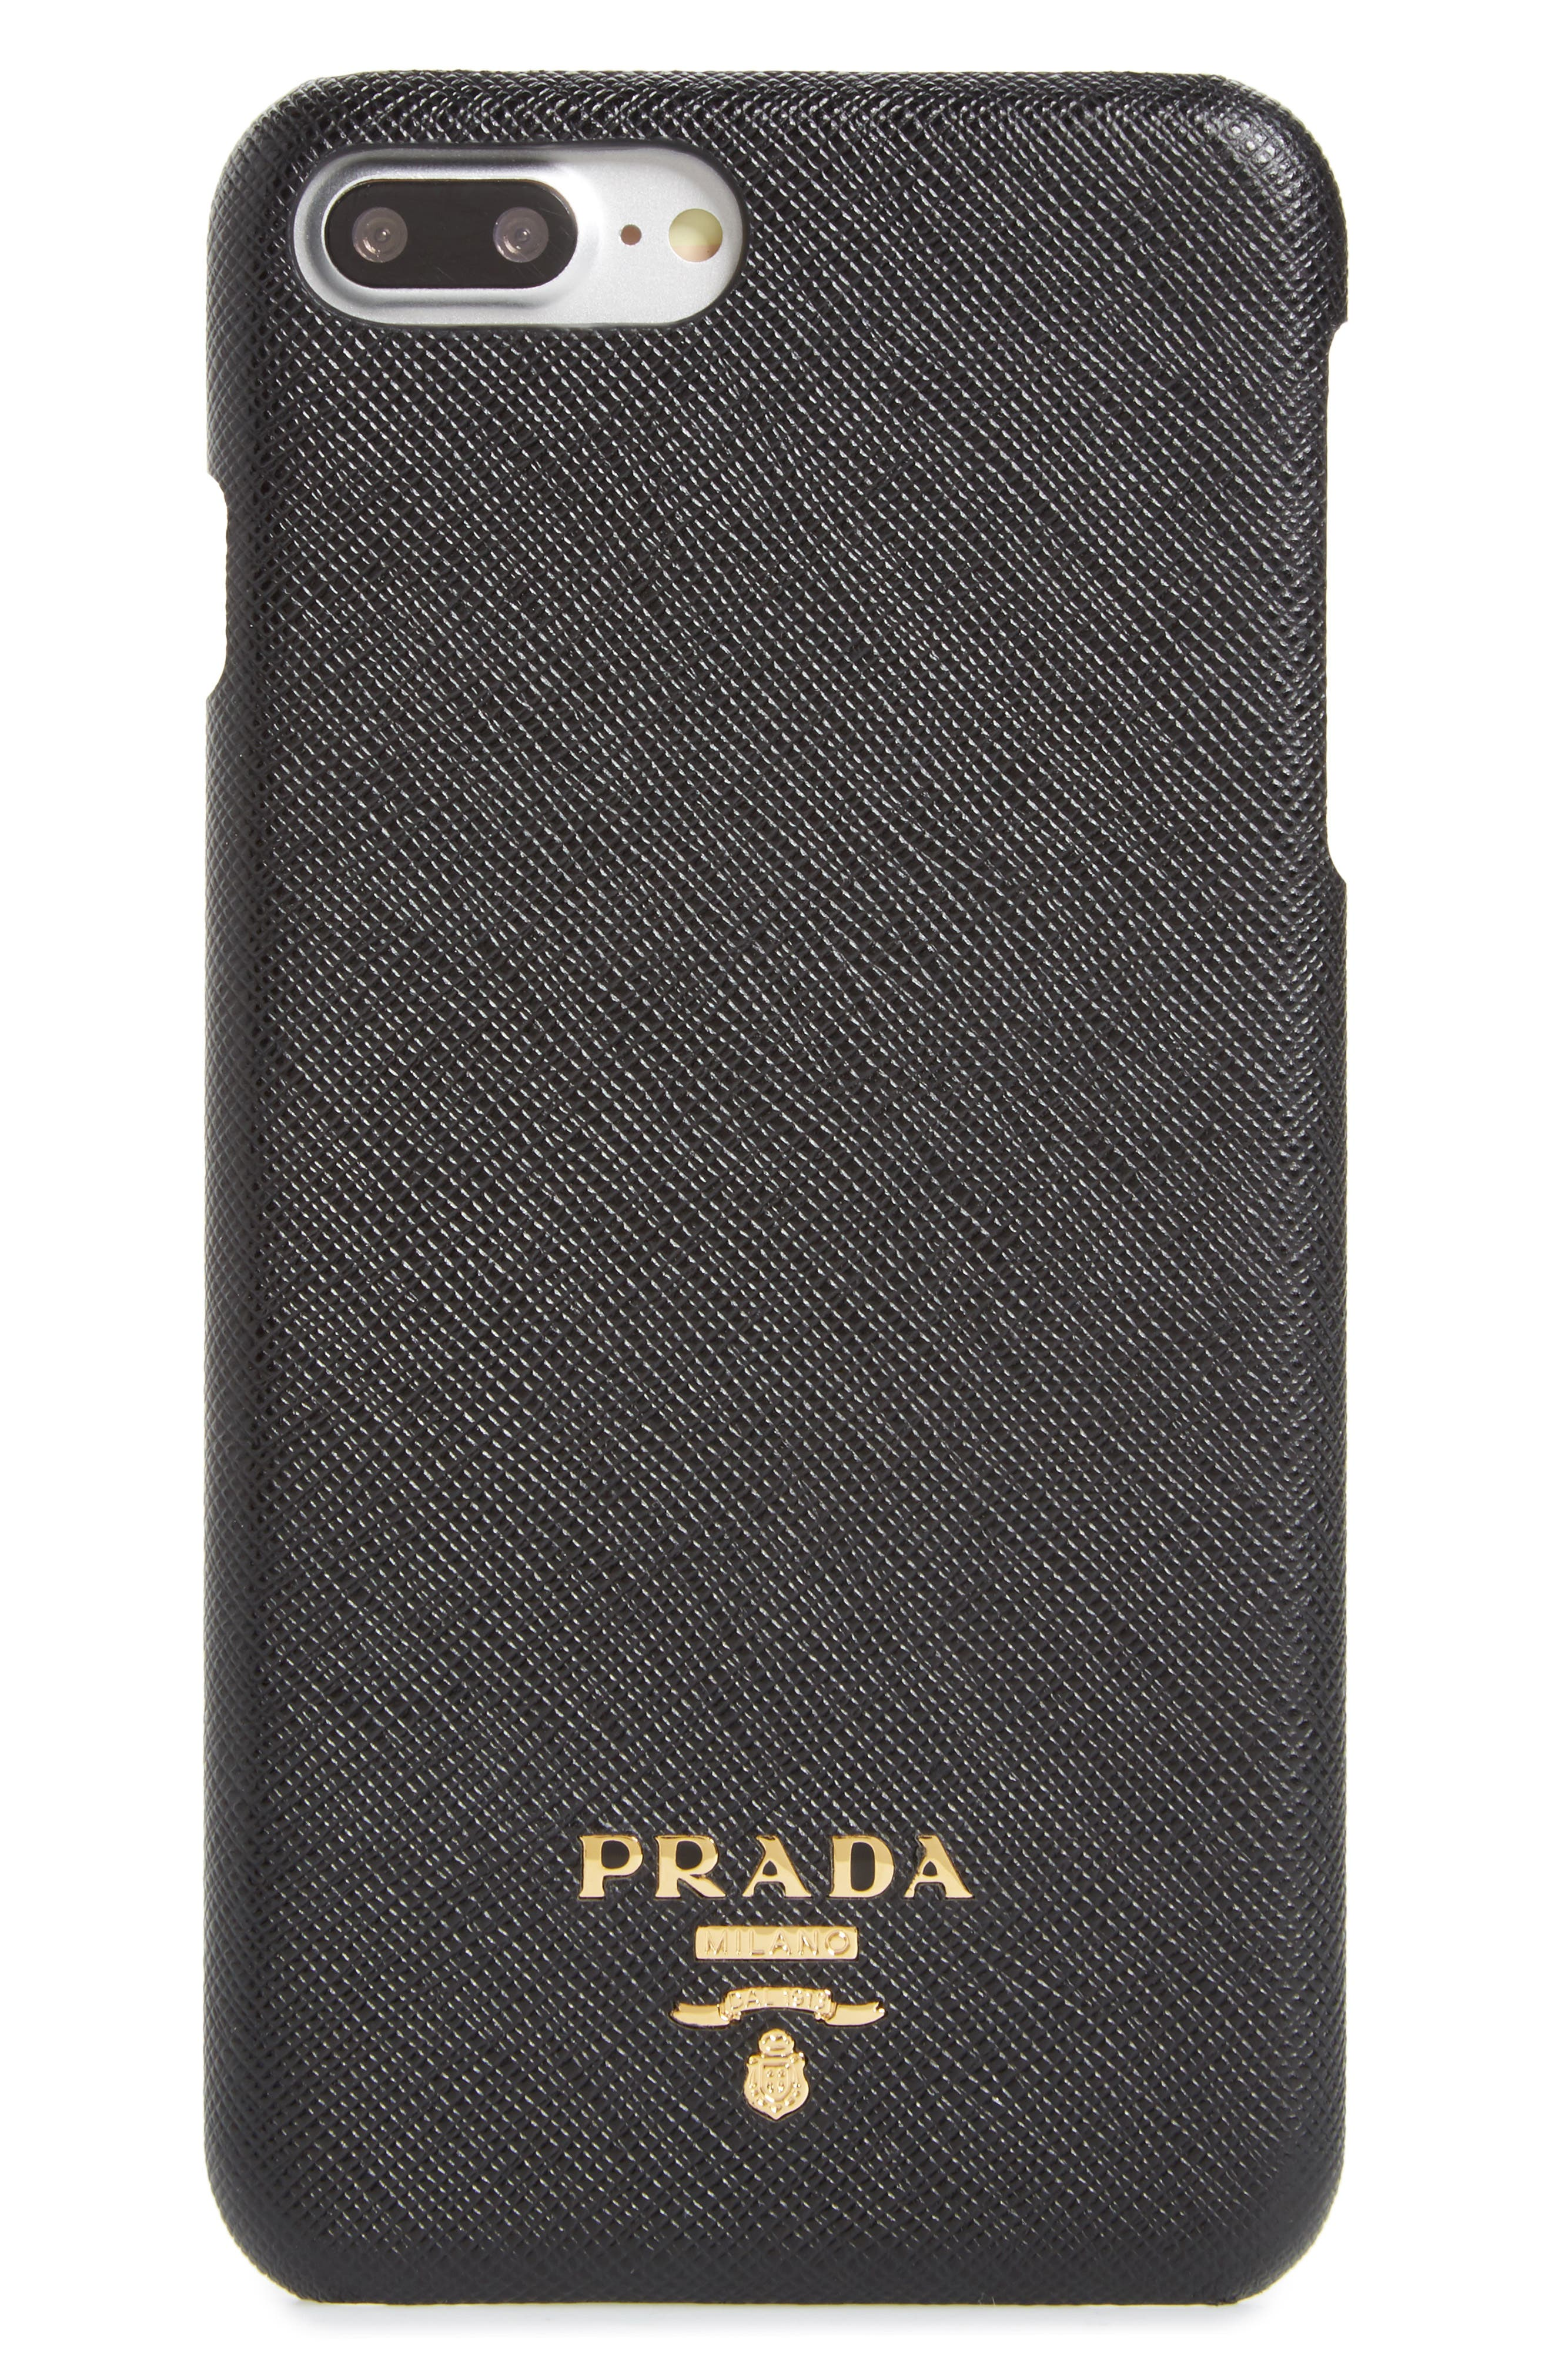 Phone Cases Prada: Shoes, Accessories & Fragrance | Nordstrom